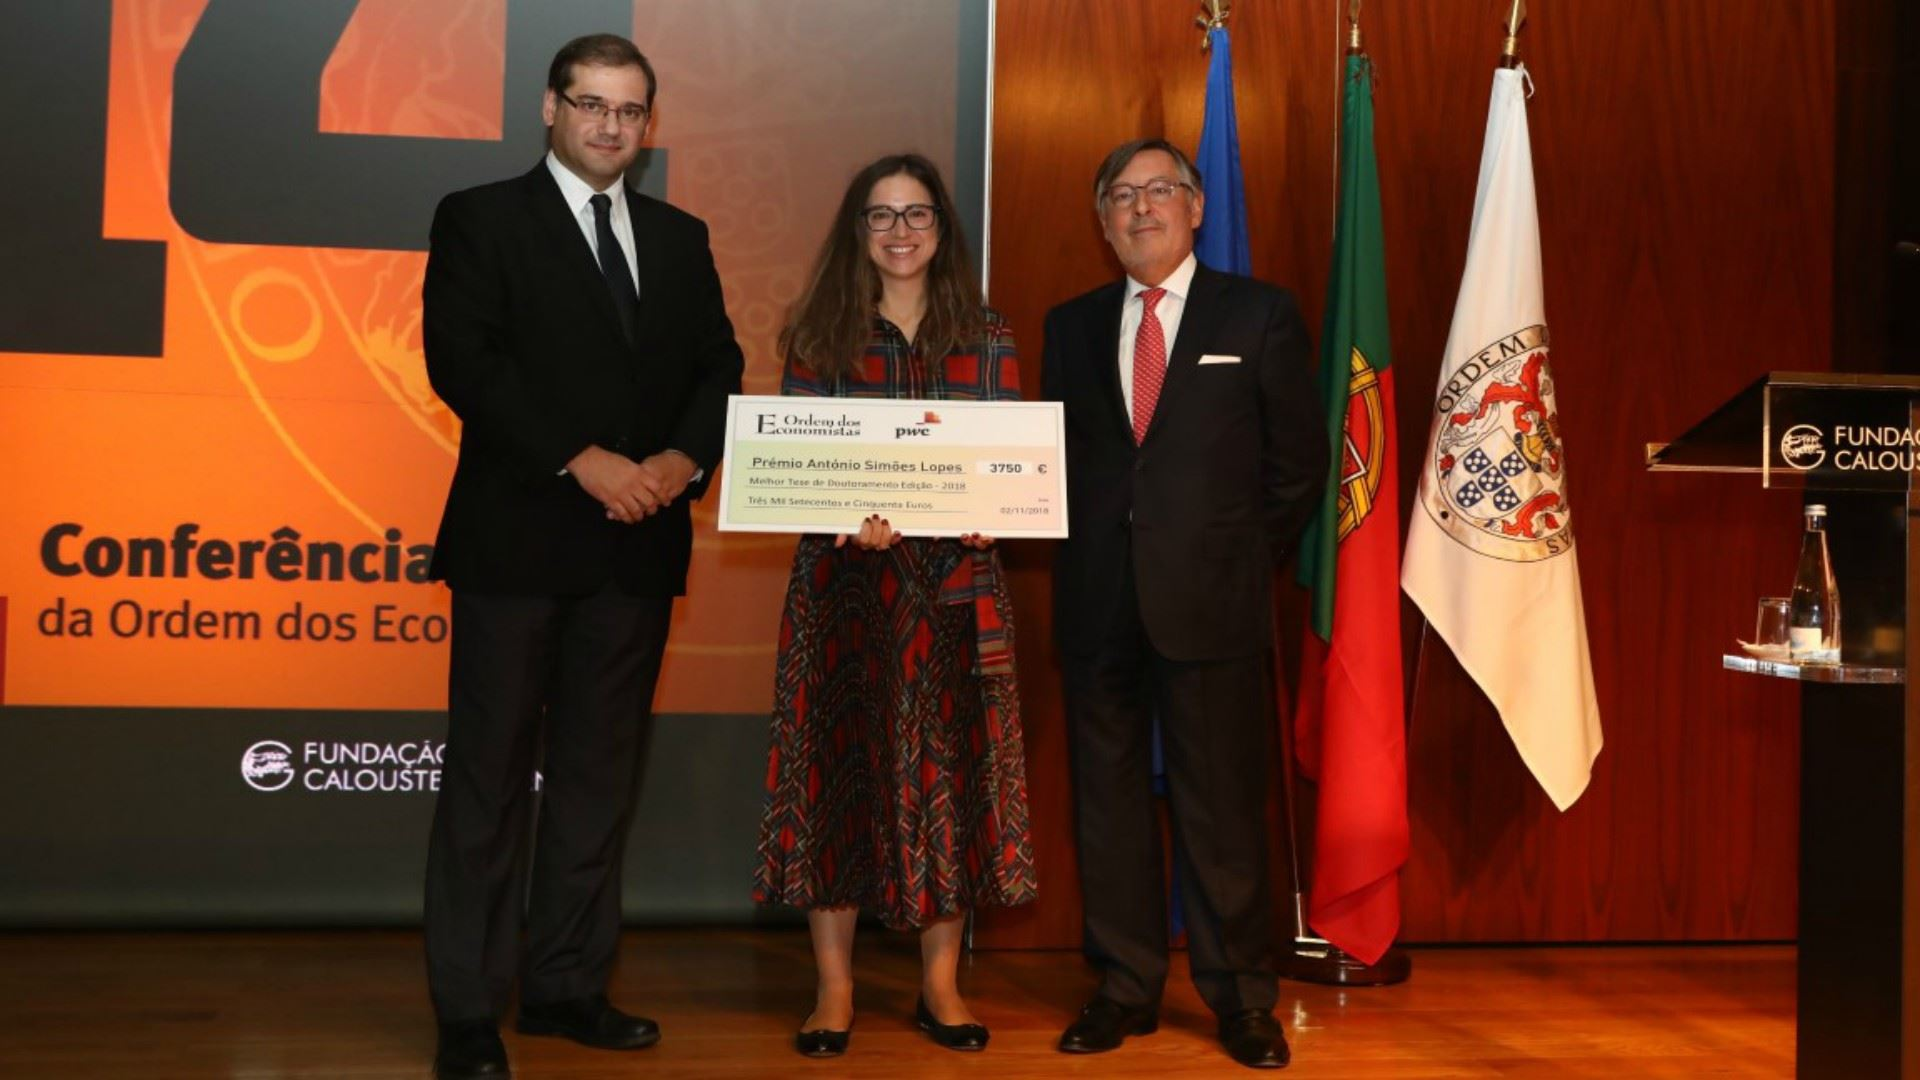 Member of Nova SBE's Research Unit was awarded the António Simões Lopes award 2018